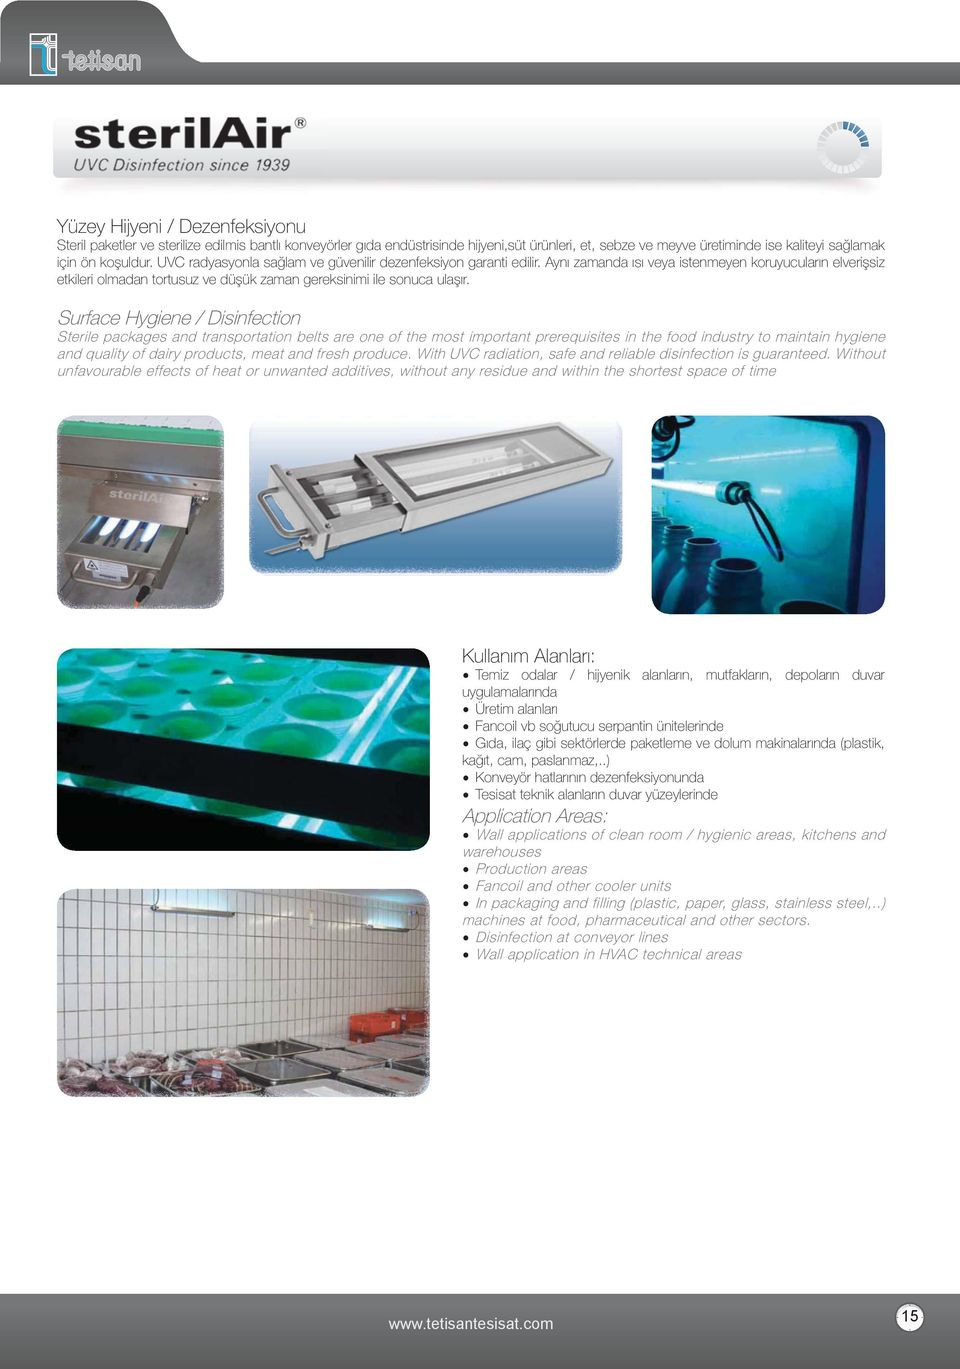 Surface Hygiene / Disinfection Sterile packages and transportation belts are one of the most important prerequisites in the food industry to maintain hygiene and quality of dairy products, meat and